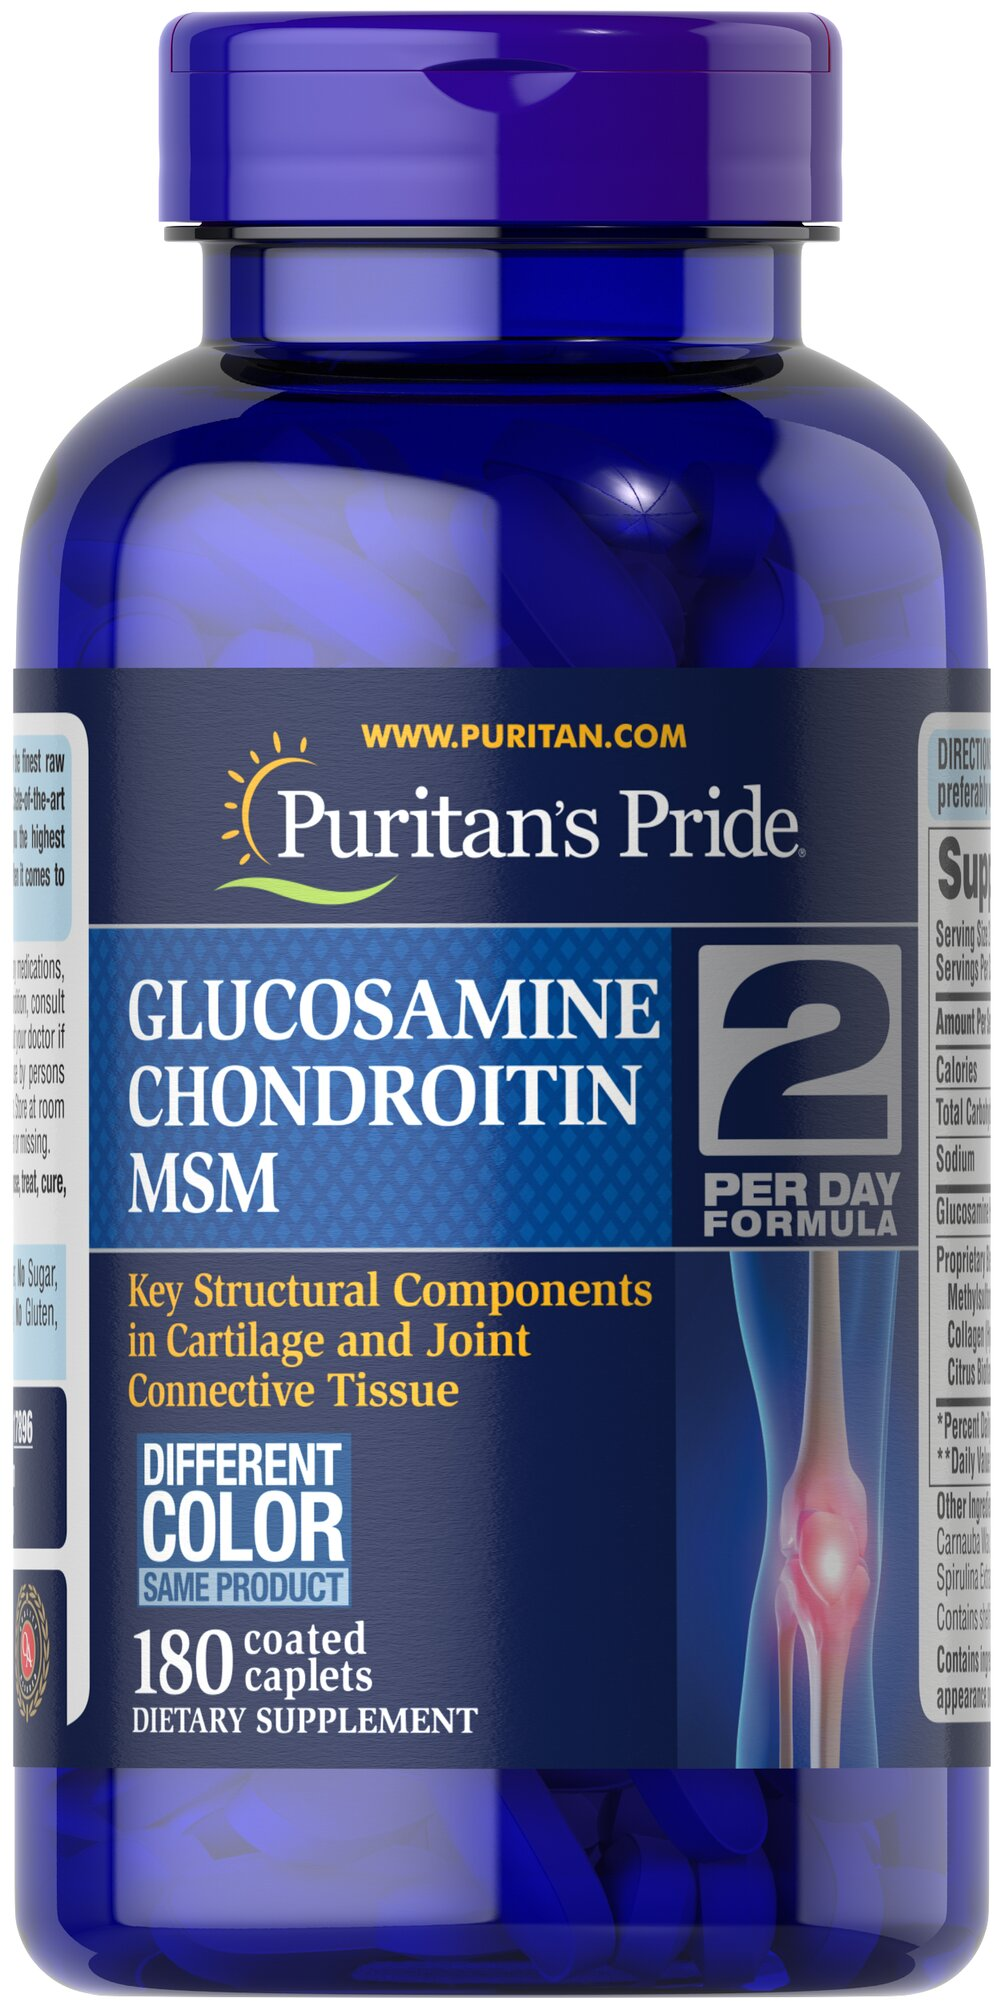 Triple Strength Glucosamine, Chondroitin & MSM Joint Soother® <p>Lubricates joints to improve flexibility**</p><p>Supports connective tissue in and around the joints**</p><p>Triple Strength Glucosamine, Chondroitin and MSM is the most powerful joint soother yet!** Just two caplets per day will give you triple strength protection with 1500 mg of Glucosamine, and 1700 mg of our joint nourishing proprietary blend.**</p> 180 Caplets  $39.98